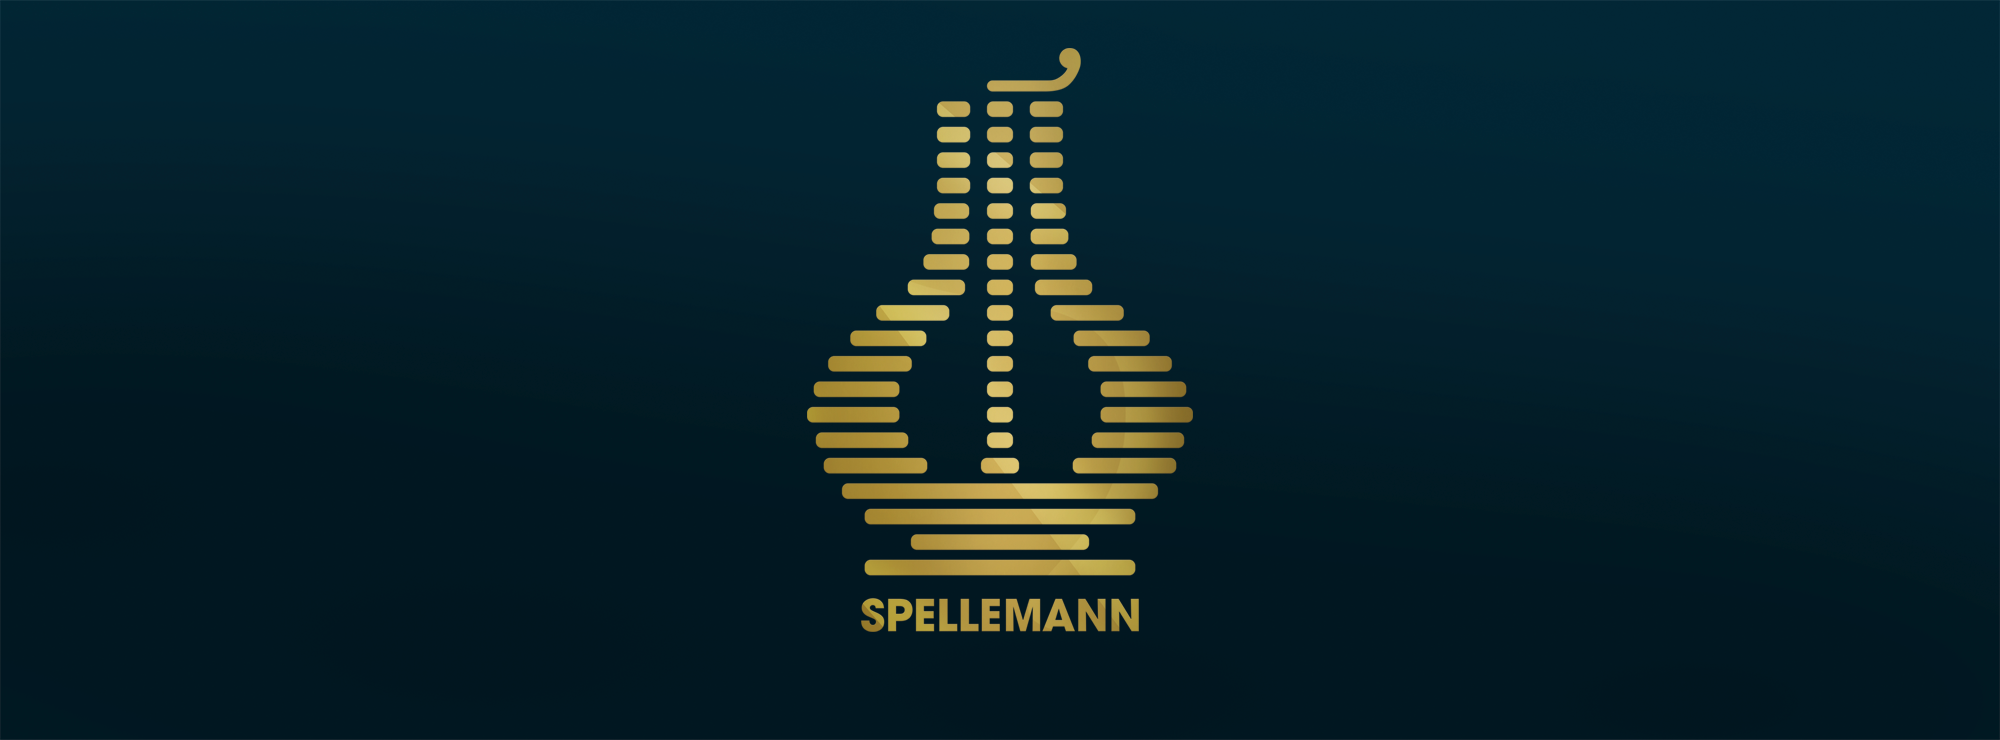 Norwegian Award Spellemannprisen Announces Nominees